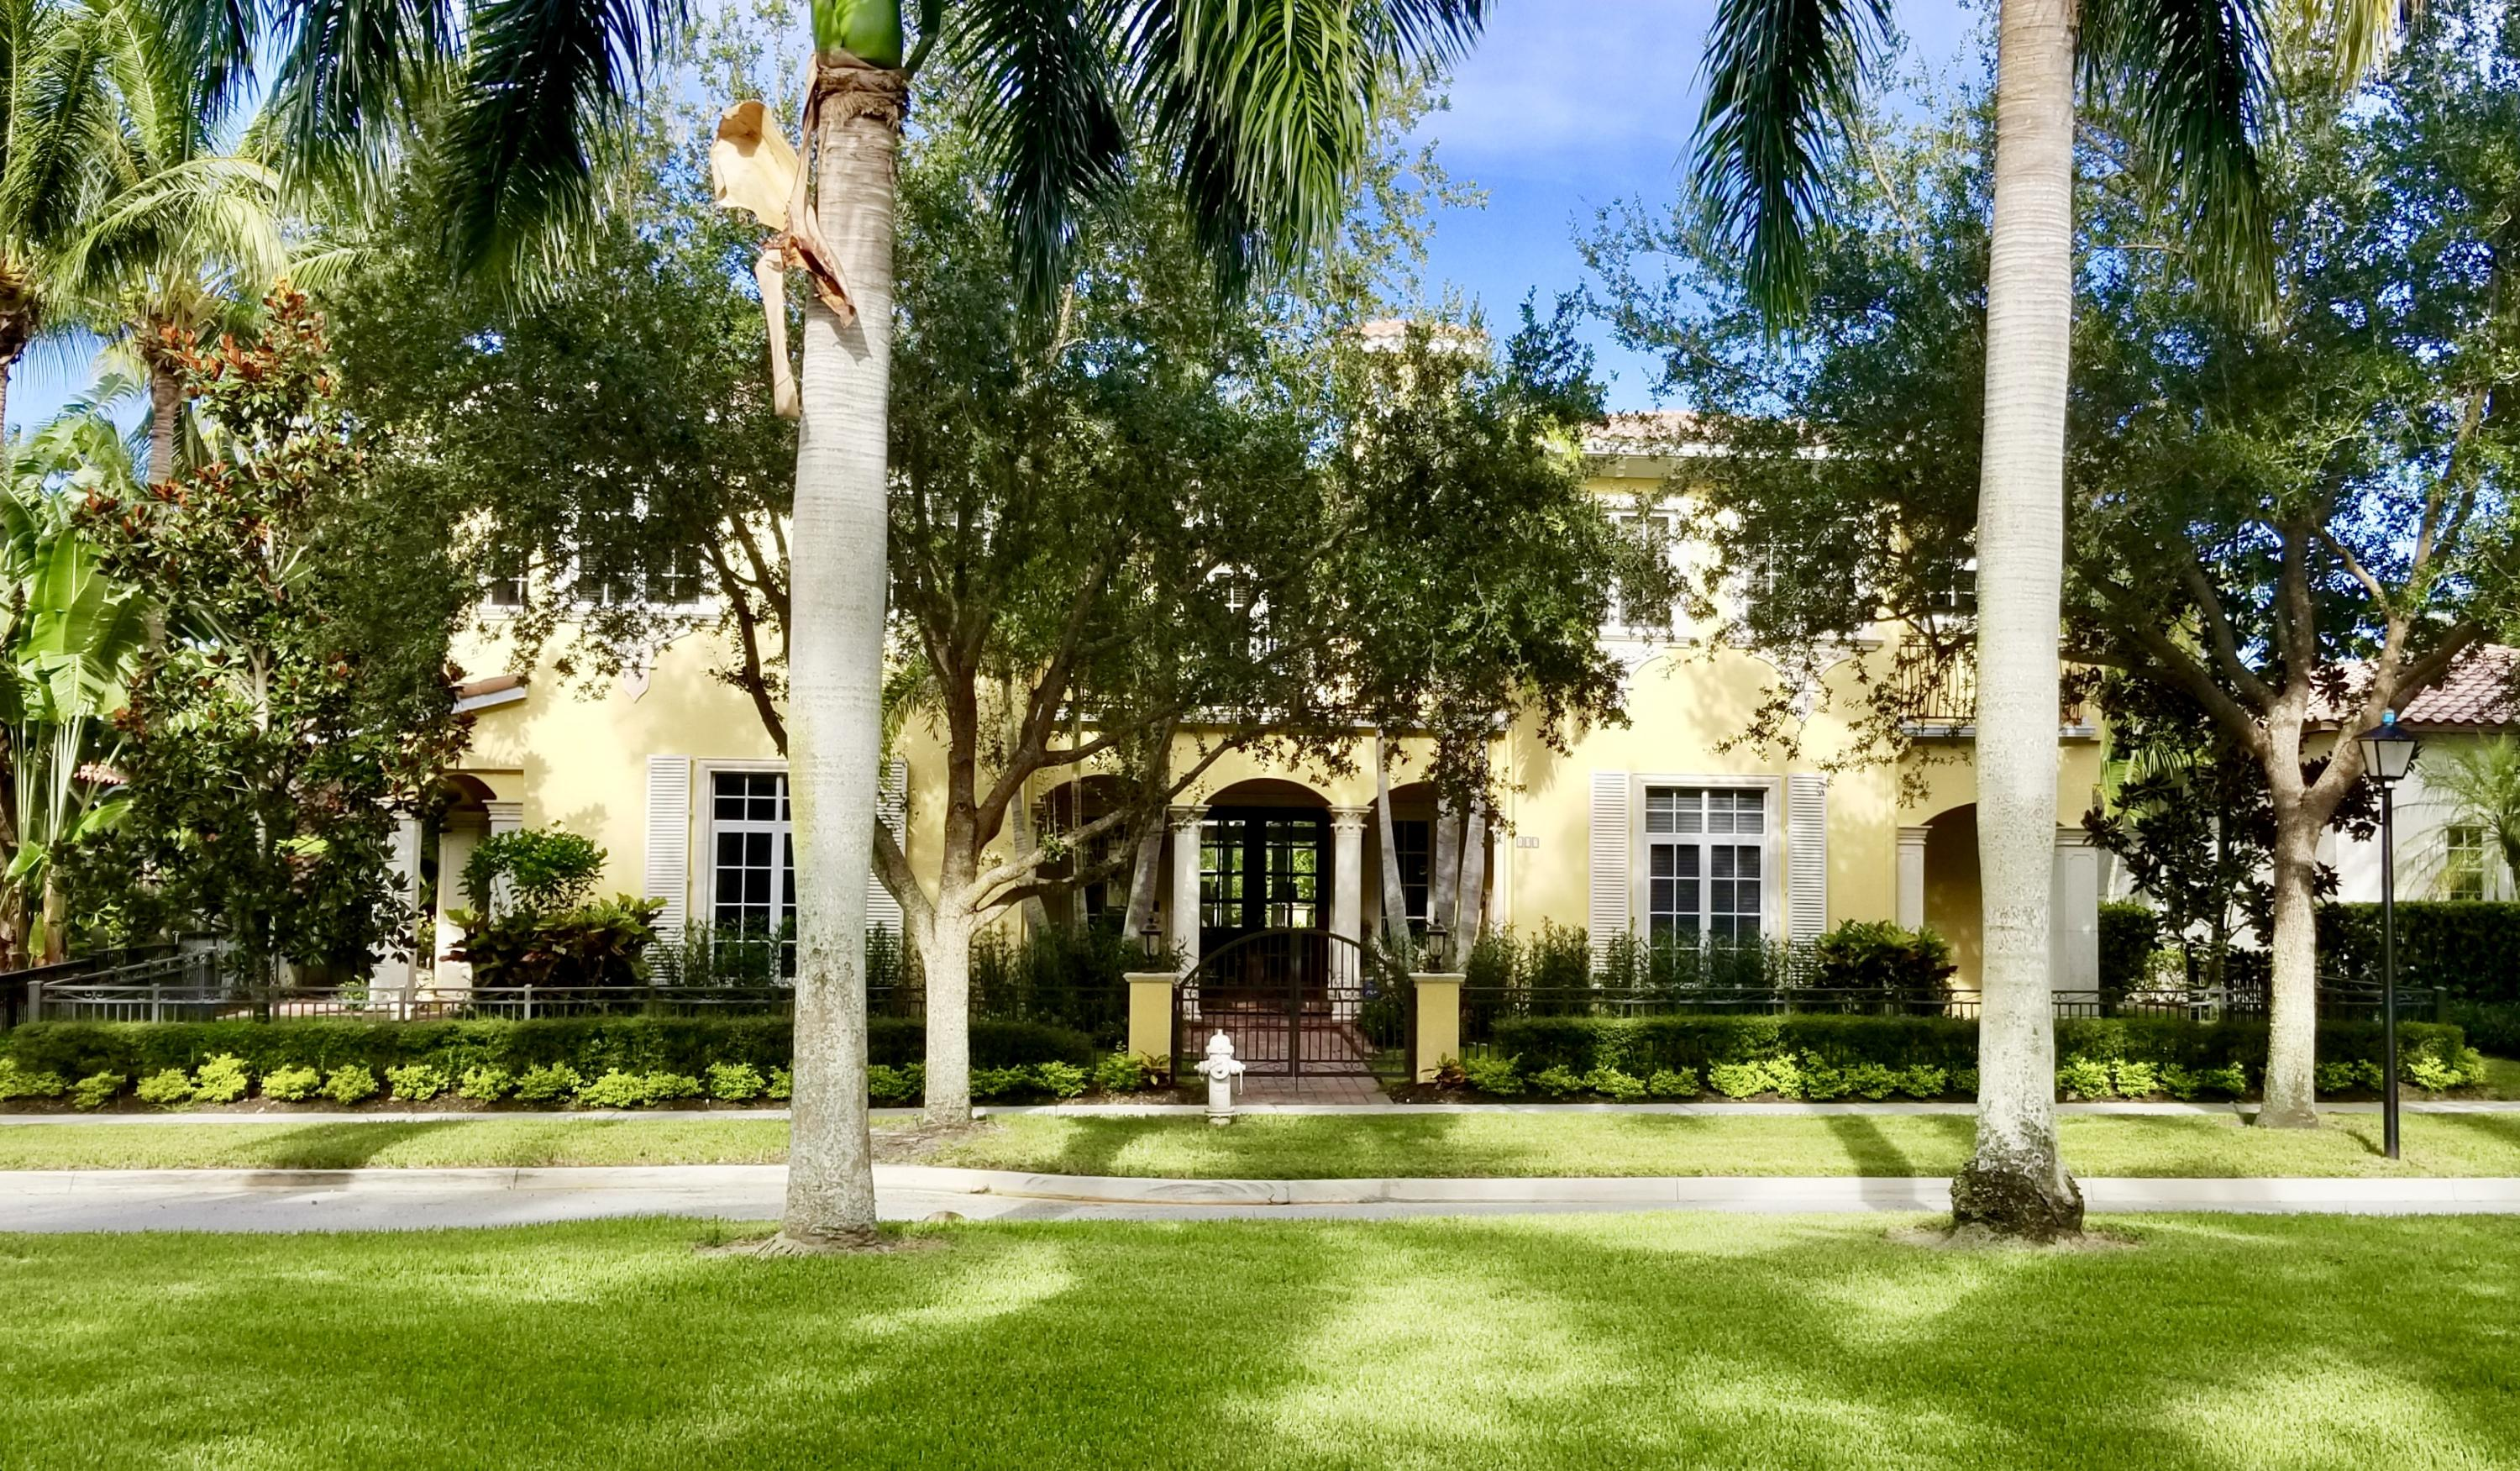 New Home for sale at 107 Valencia Boulevard in Jupiter